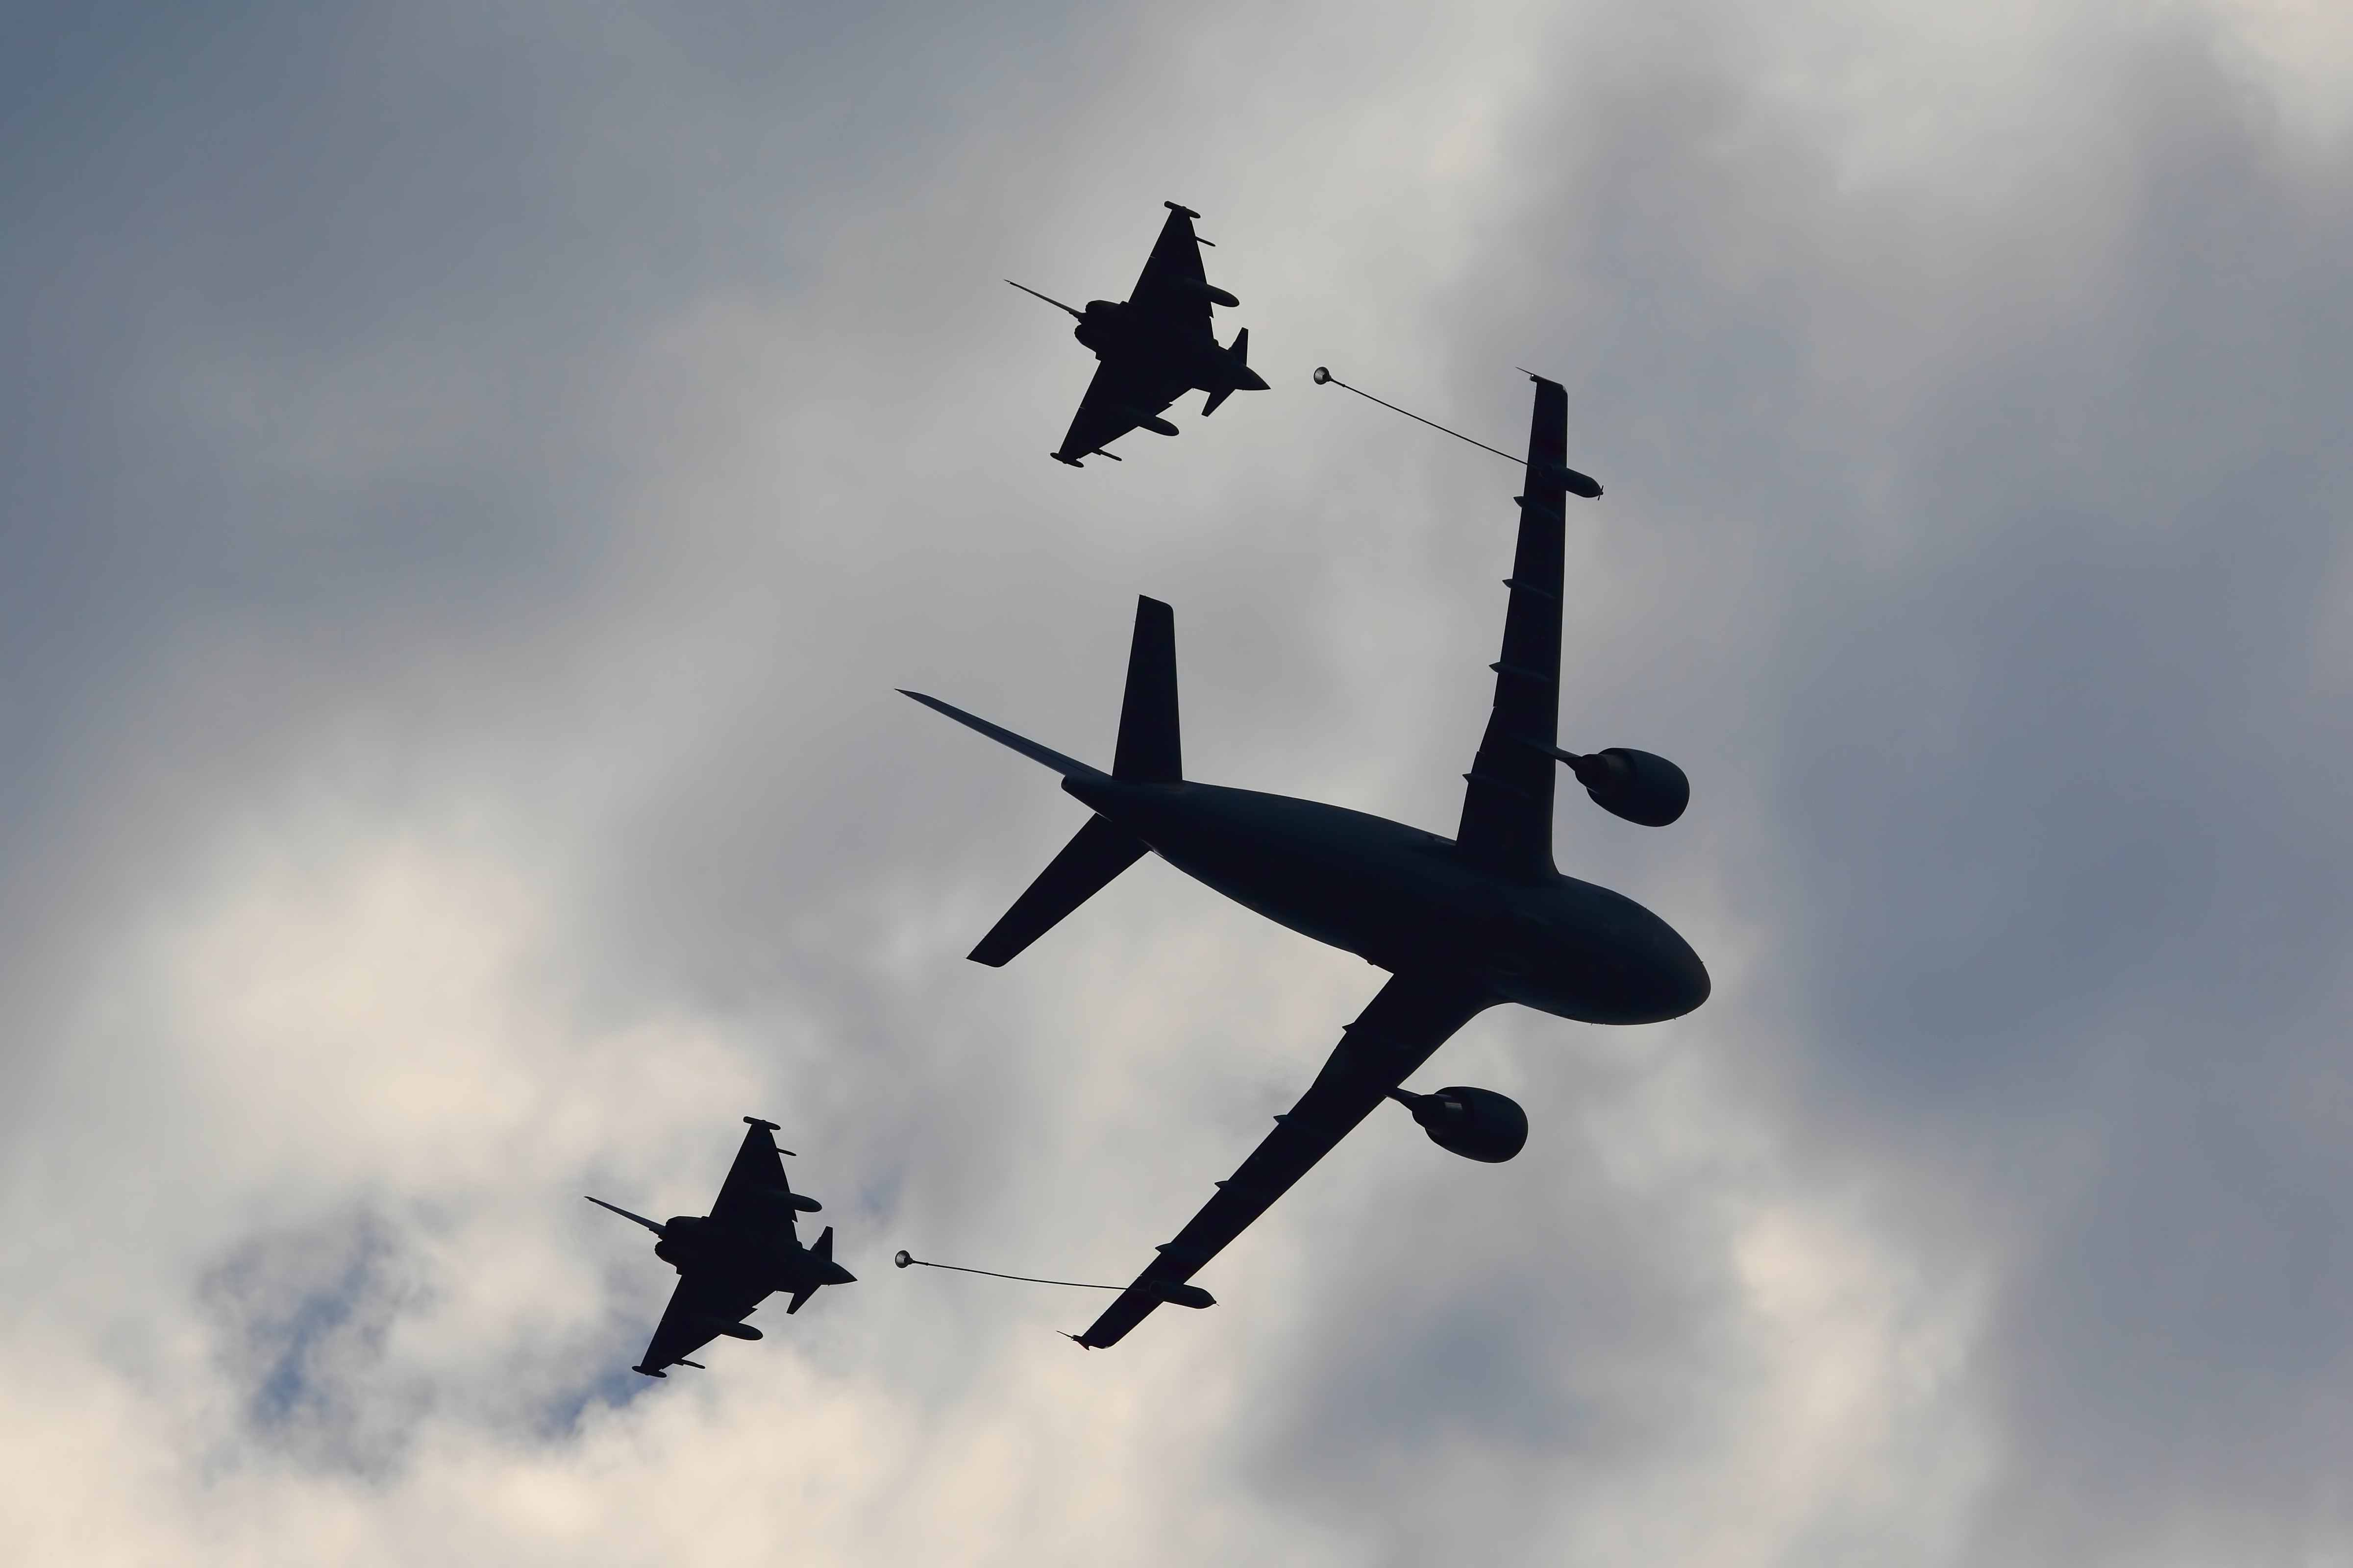 Military flying refueling tanker fueling two fighter jets in a cloudy sky.